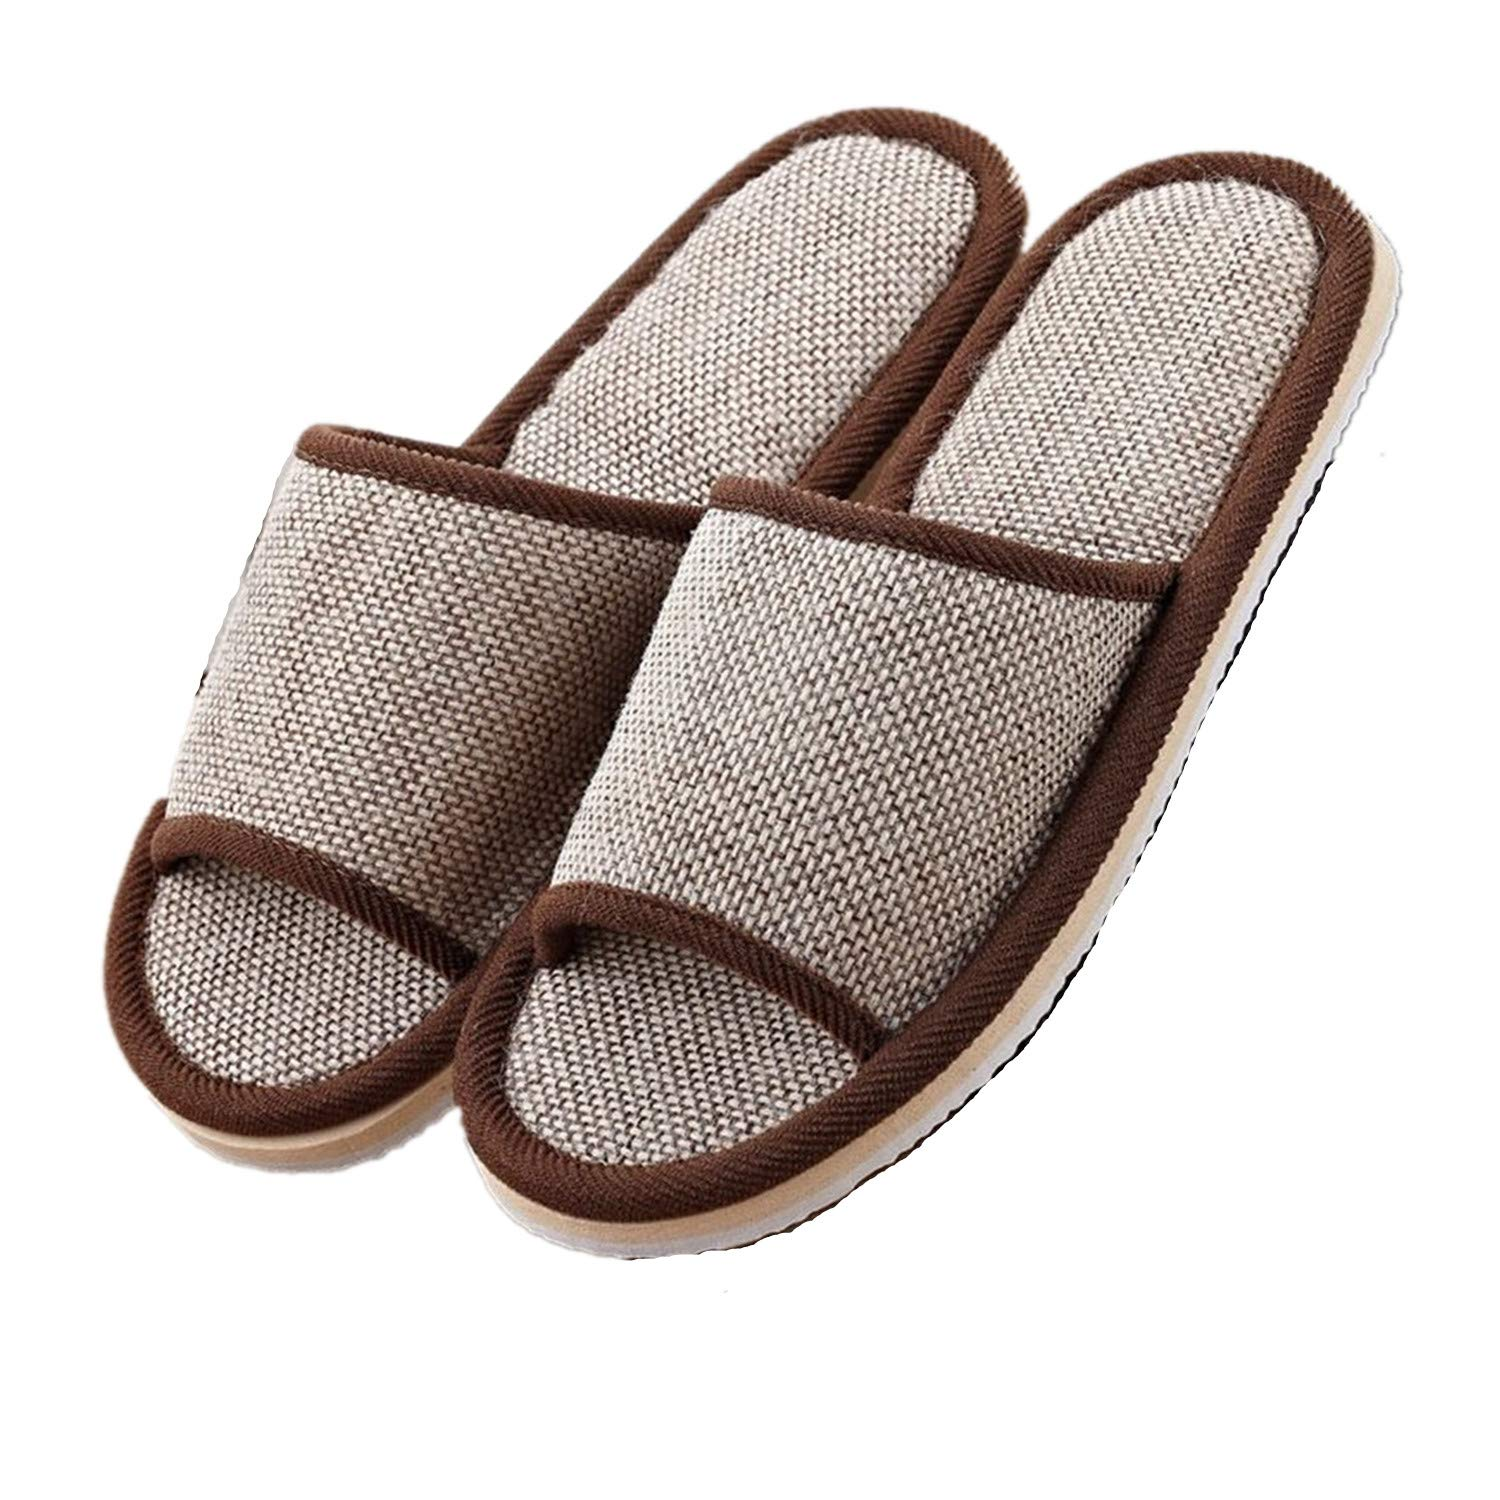 2 Pairs Spa Max 79% OFF Sale Special Price Slippers House for Thick Open Men Flax Toe